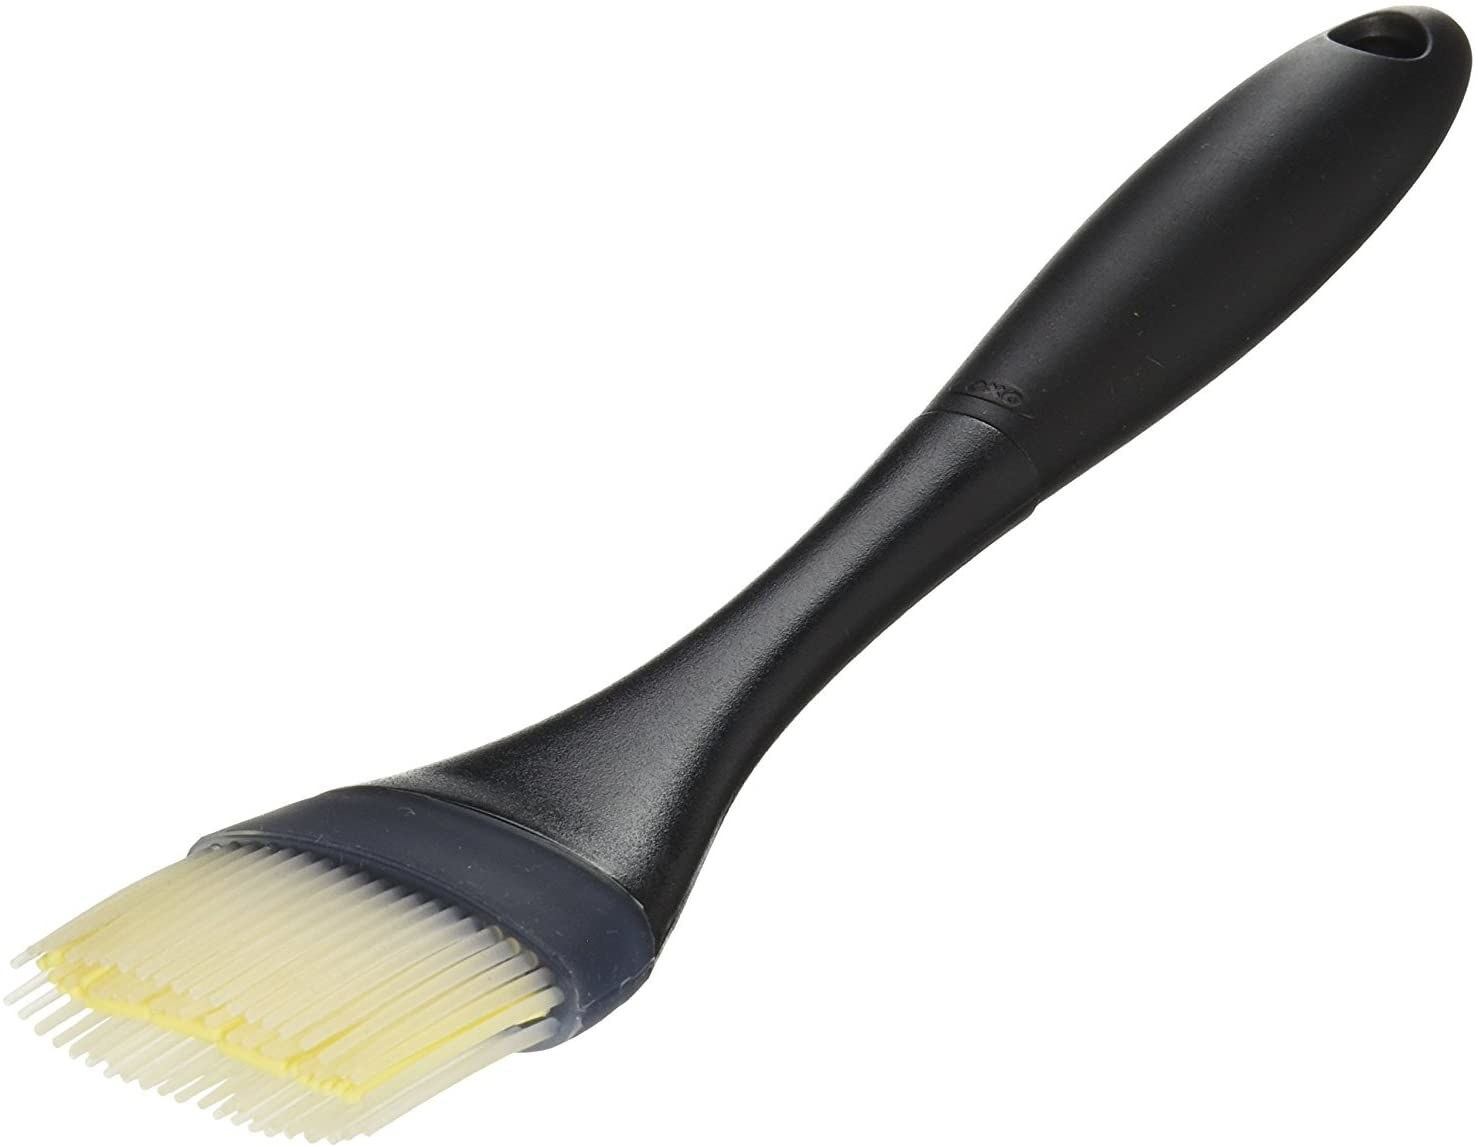 pastry brush with black handle and three layers of clear bristles